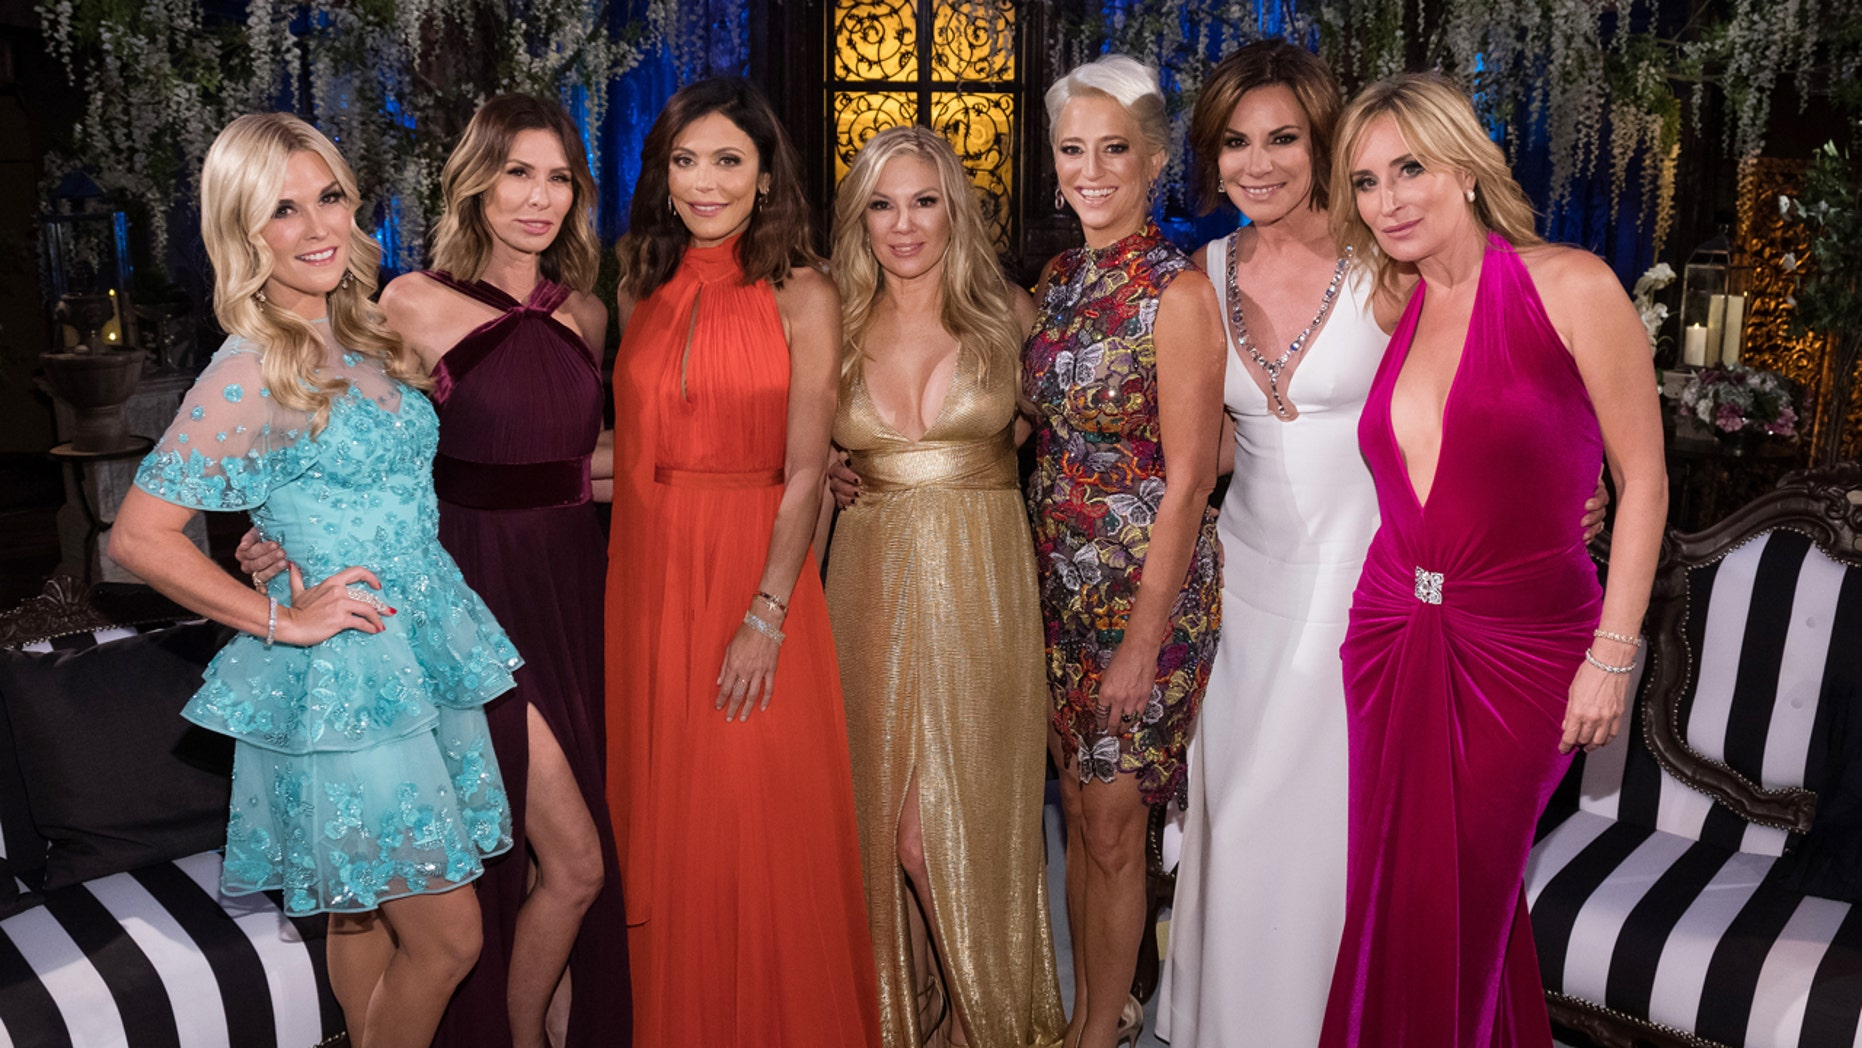 """THE REAL HOUSEWIVES OF NEW YORK CITY -- """"Reunion"""" -- Pictured: (l-r) Tinsley Mortimer, Carole Radziwill, Bethenny Frankel, Ramona Singer, Dorinda Medley, Luann D'Agostino, Sonja Morgan -- (Photo by: Charles Sykes/Bravo/NBCU Photo Bank via Getty Images)"""